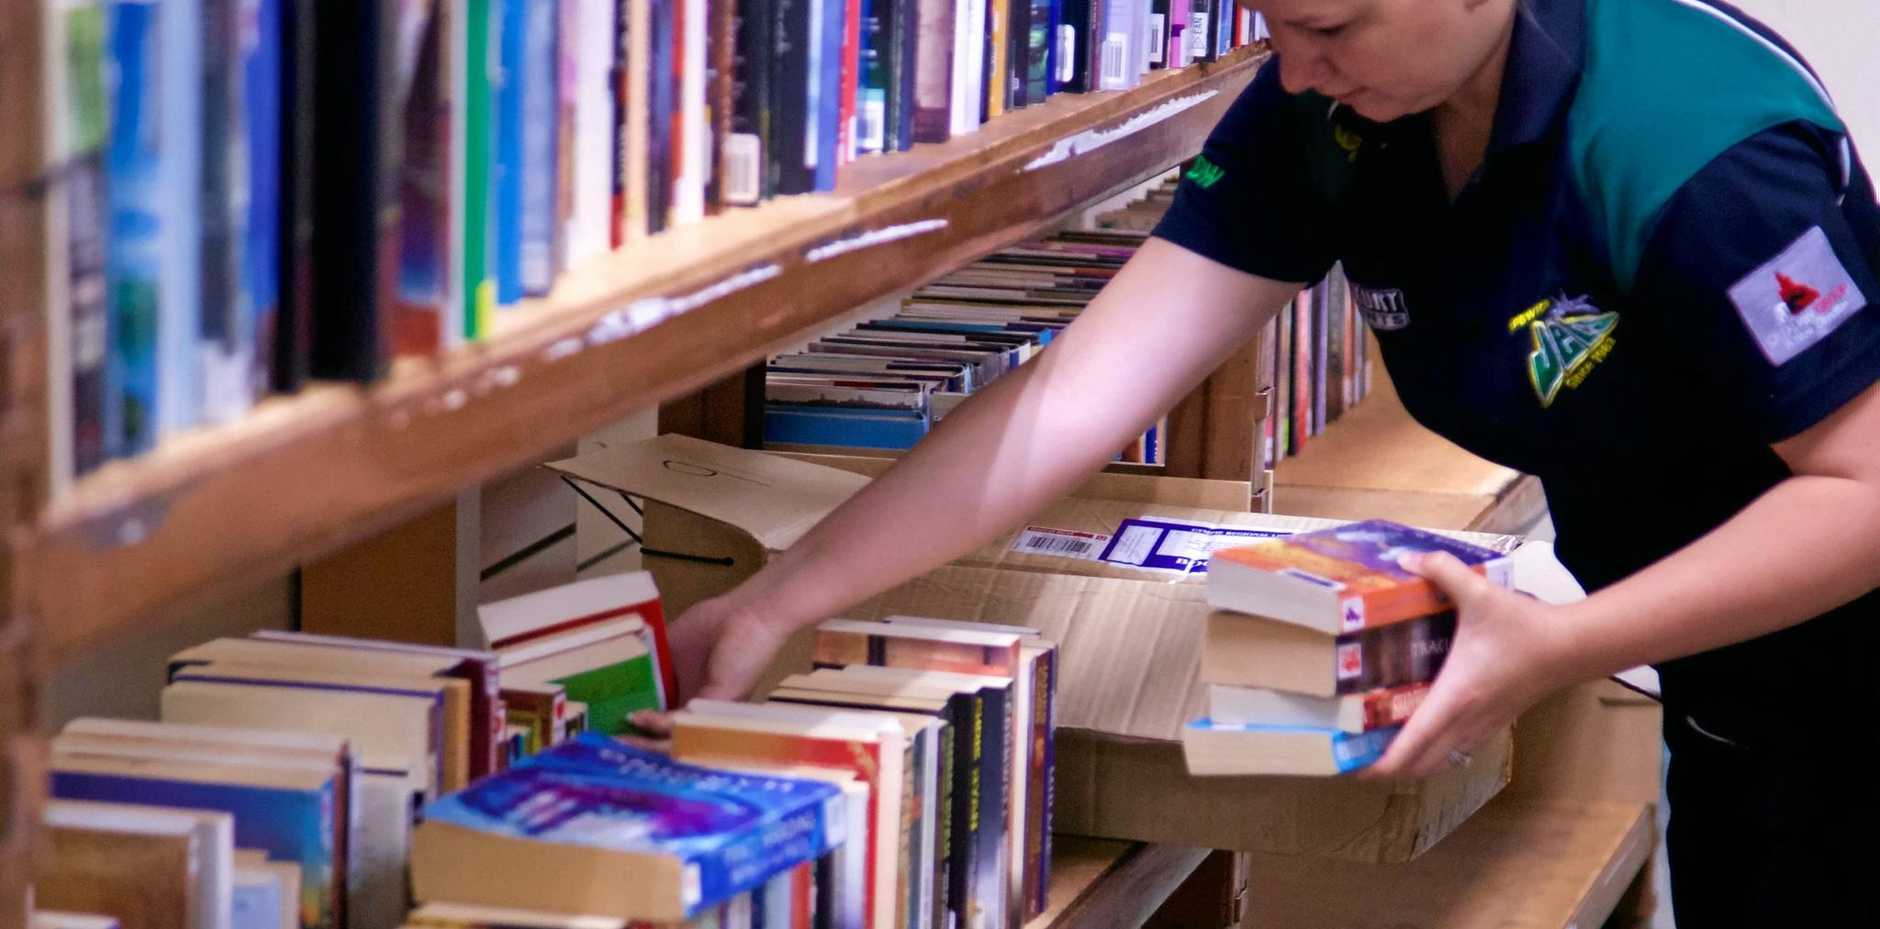 BOOK SALE: The DrugARM pop-up book store in Ipswich City Square is selling your favourites for just $2 each.